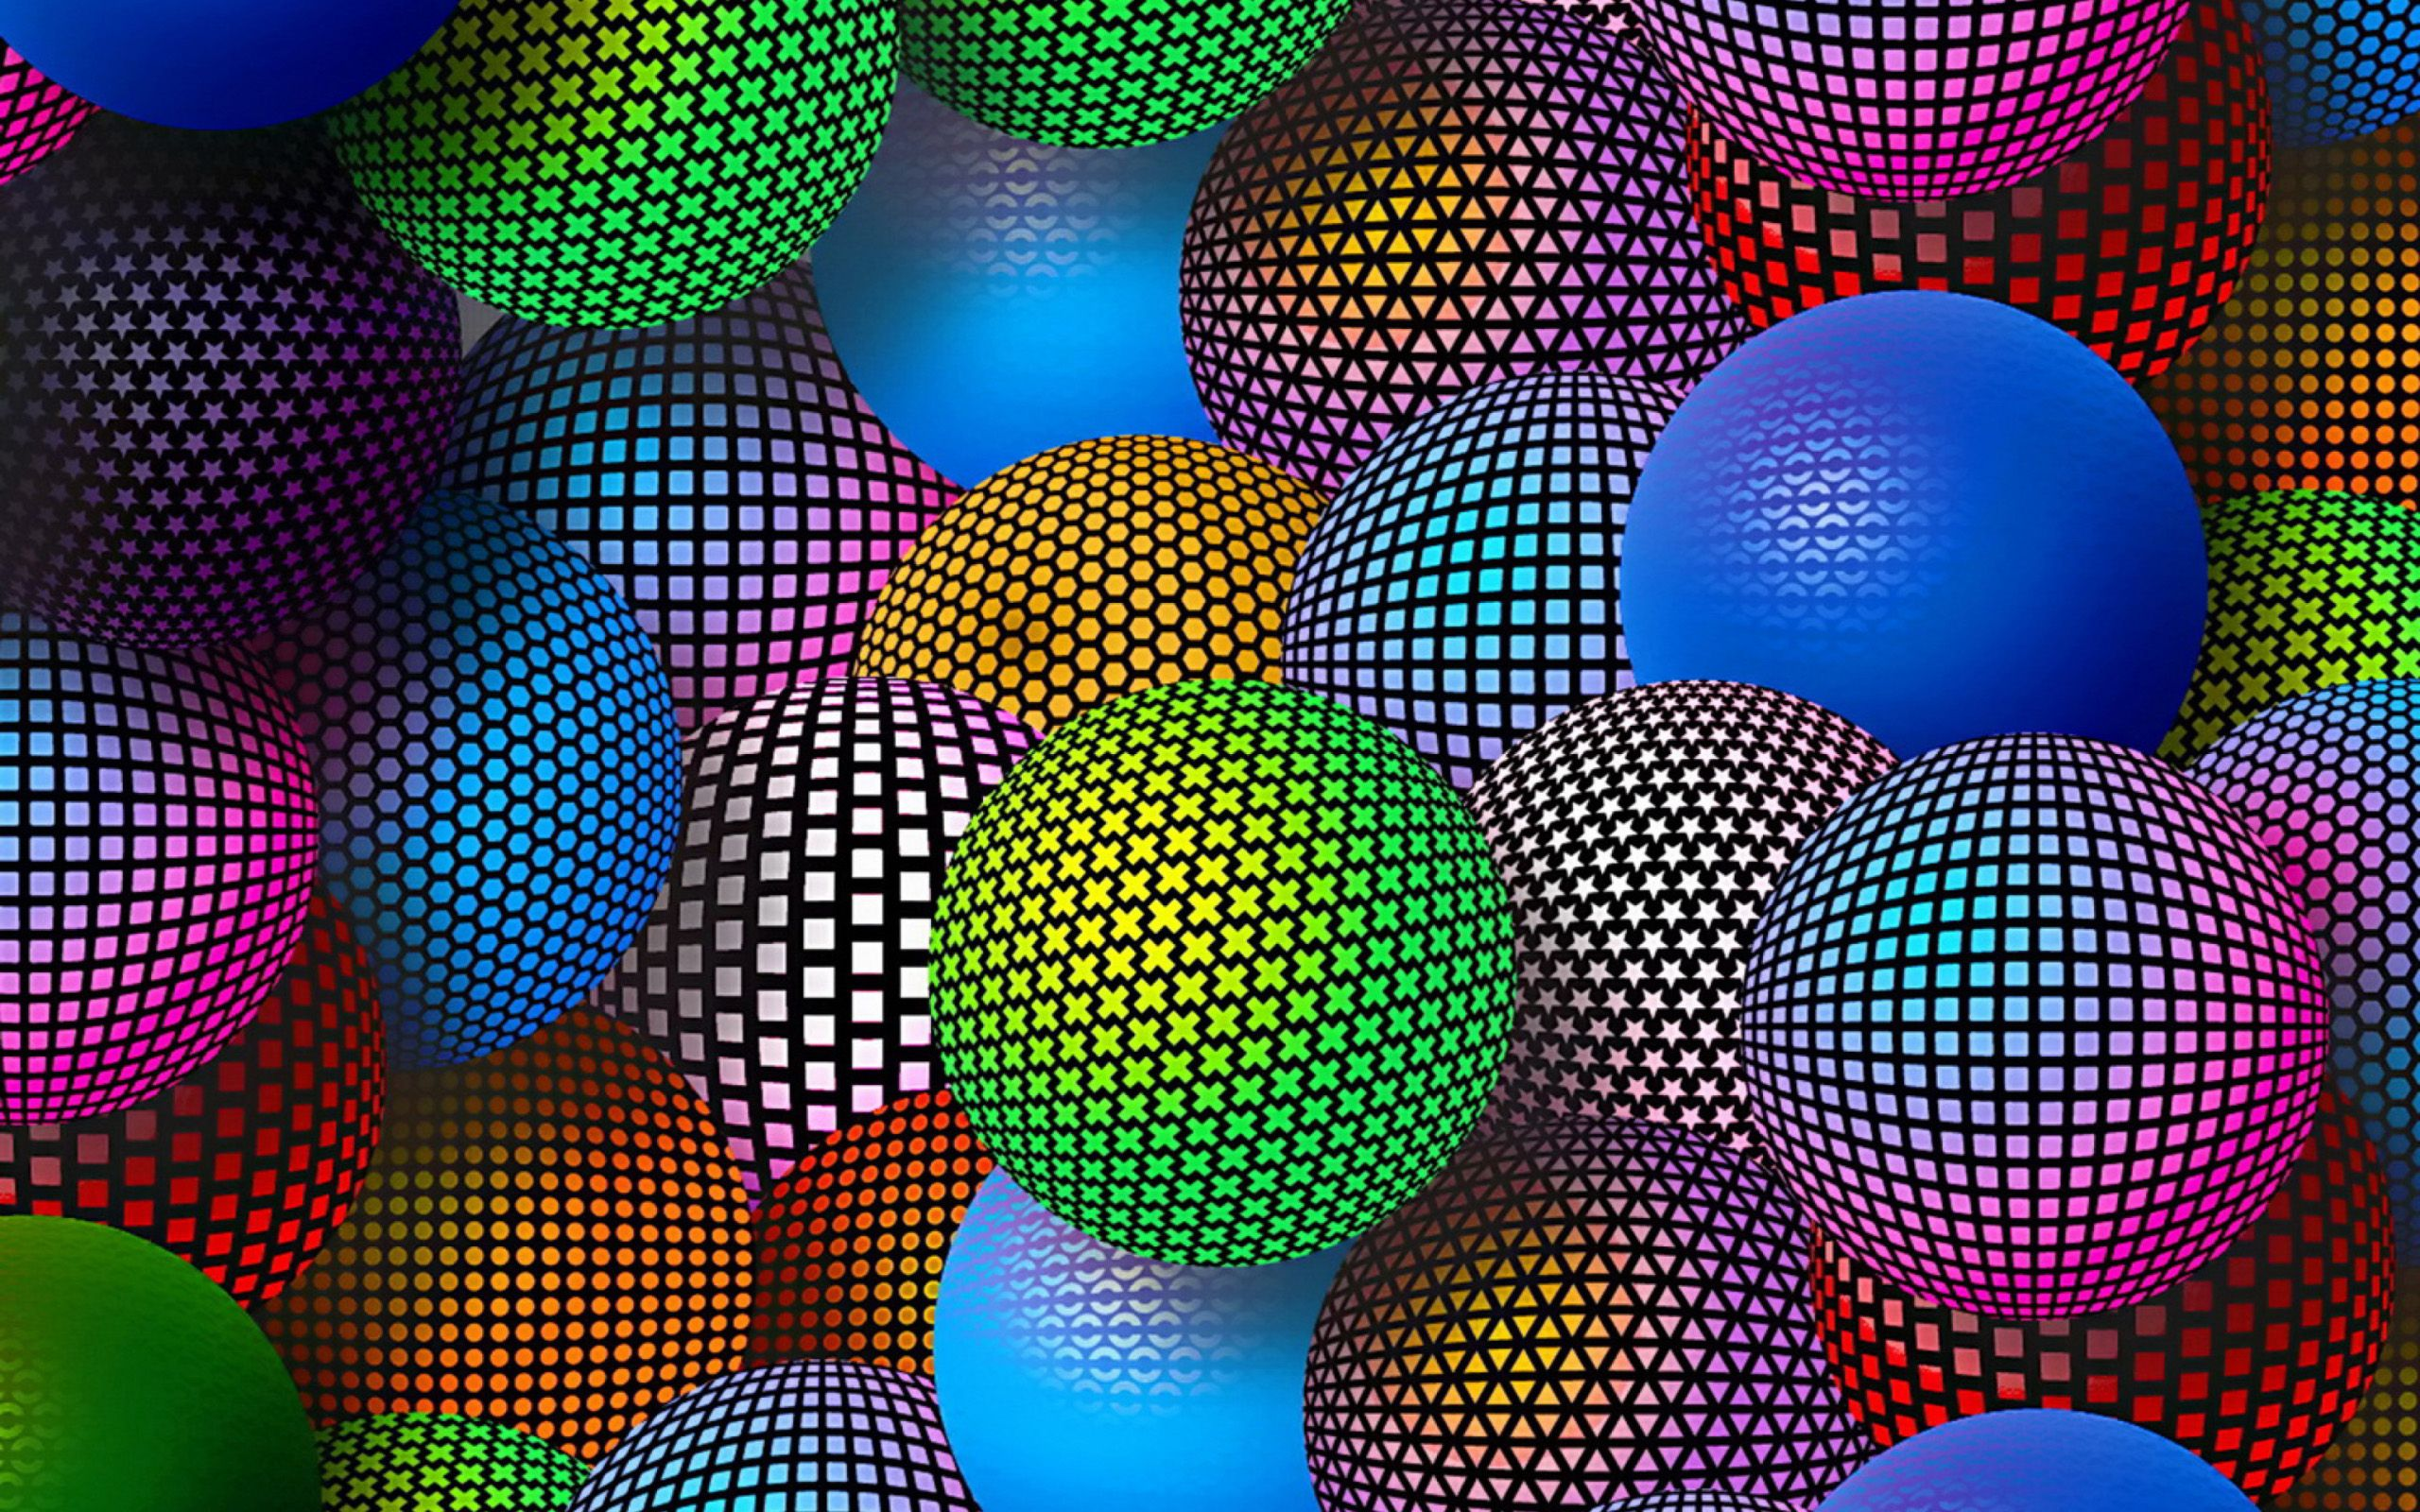 3d wallpapers mobile free download, xp, pc | Wallpapers in 2019 | 3d wallpaper for mobile, 3d ...